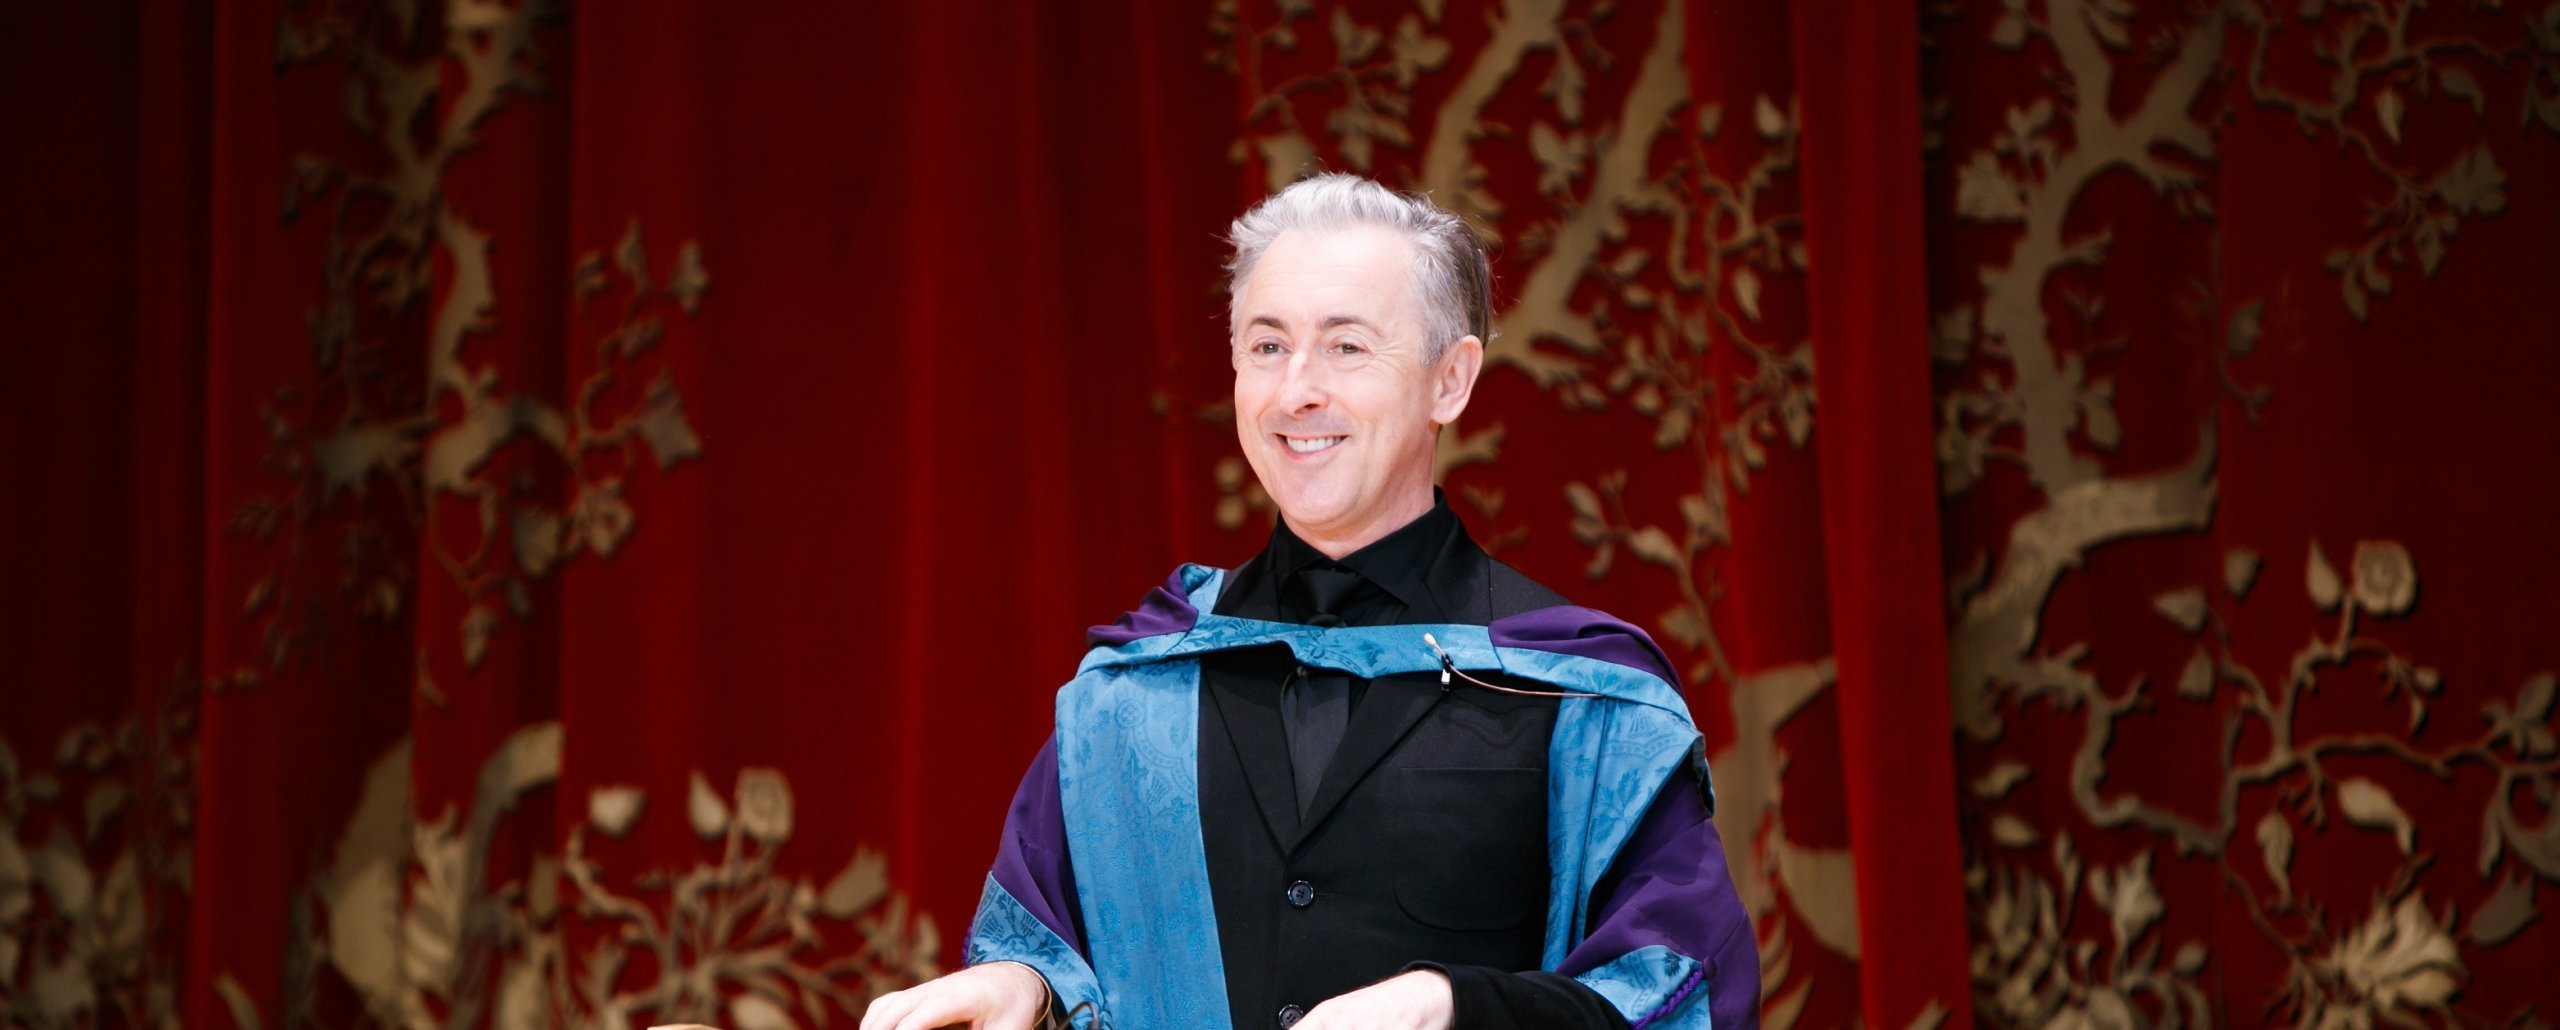 Award-winning actor, author and activist Alan Cumming returns to RCS to receive honorary doctorate Image